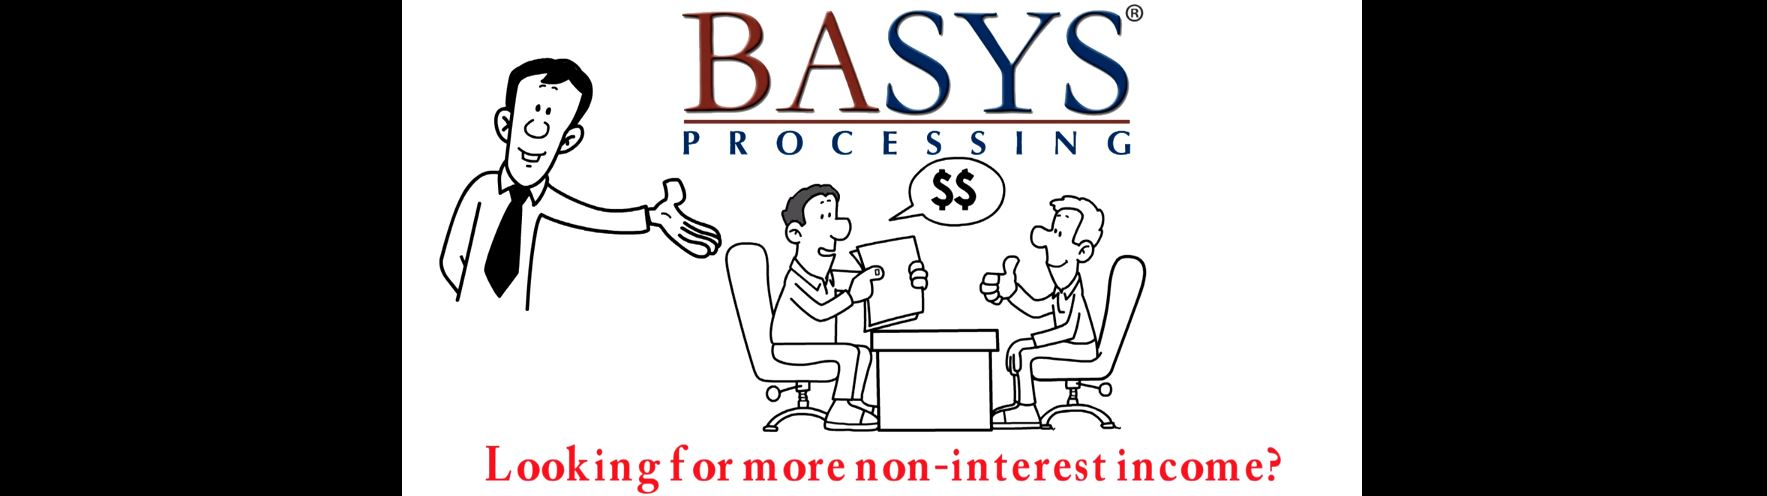 BASYS-Increase Non-Interest Income-Header